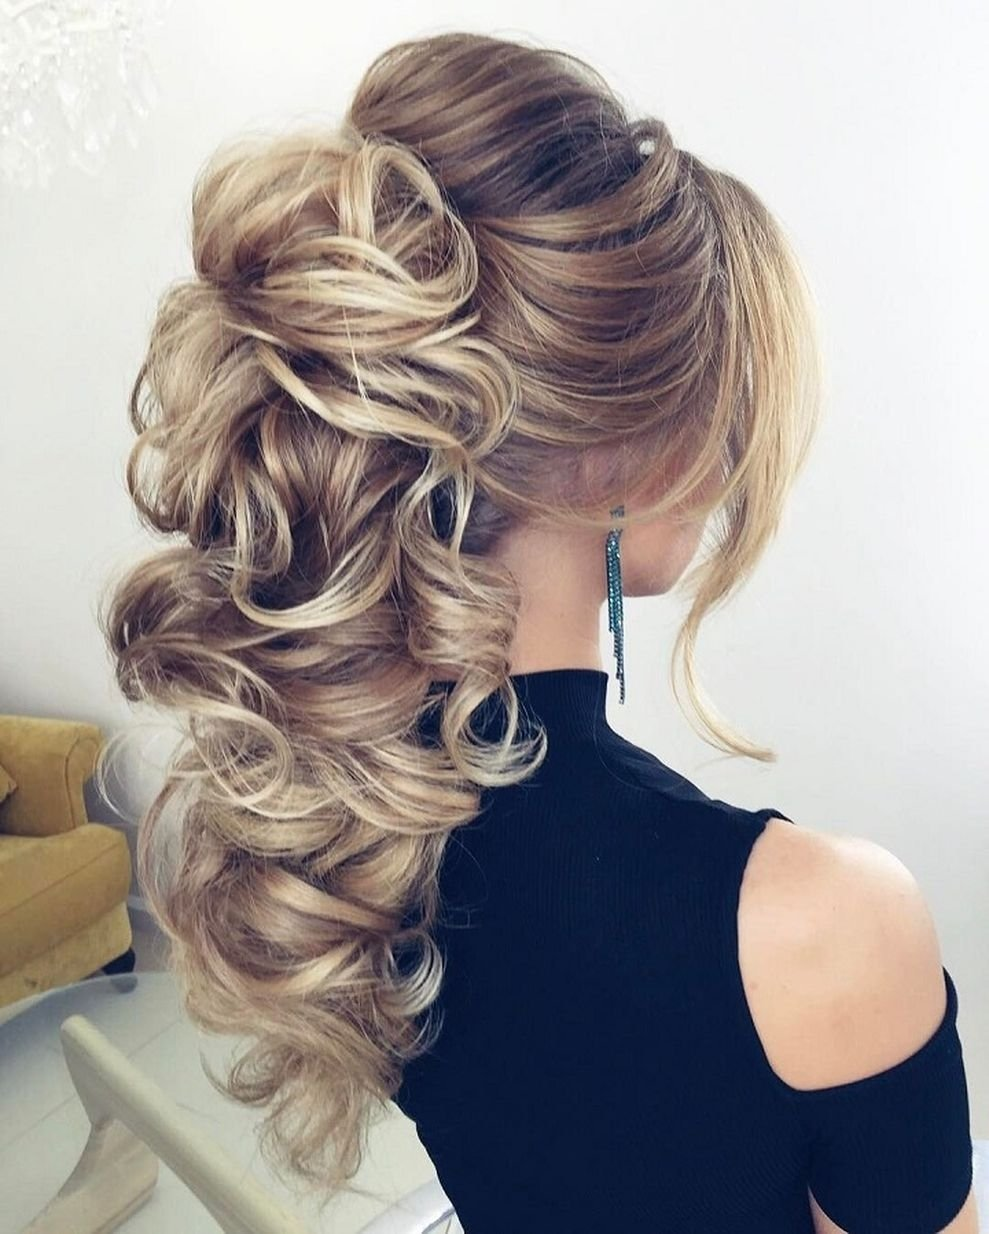 10 Famous Hairstyles Ideas For Long Hair 50 stunning wedding hairstyles ideas for long hair coiffures 2020